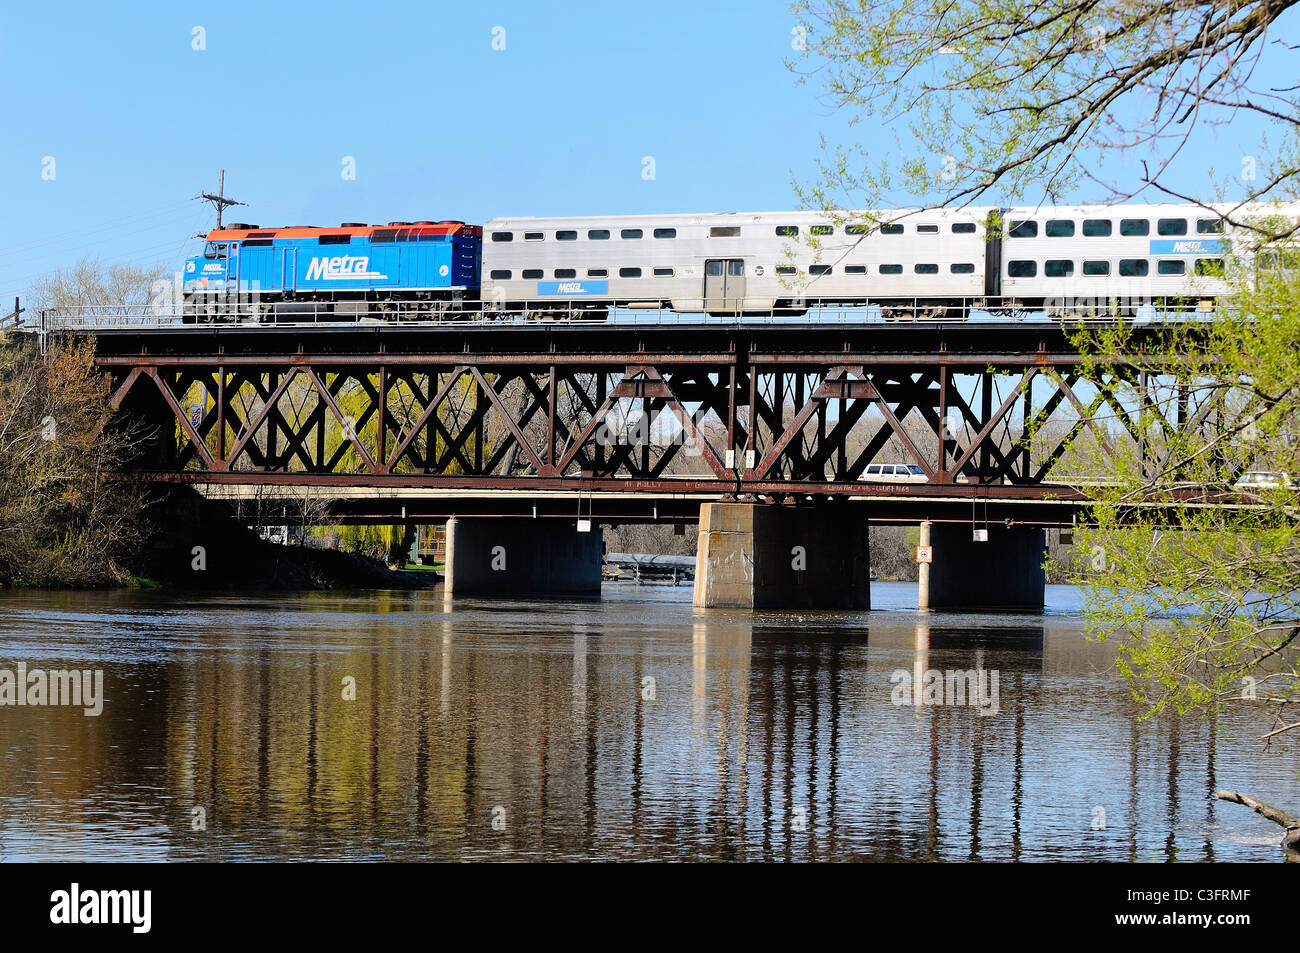 Metra commuter train out of Chicago crossing over the Fox River on rusting bridge. - Stock Image